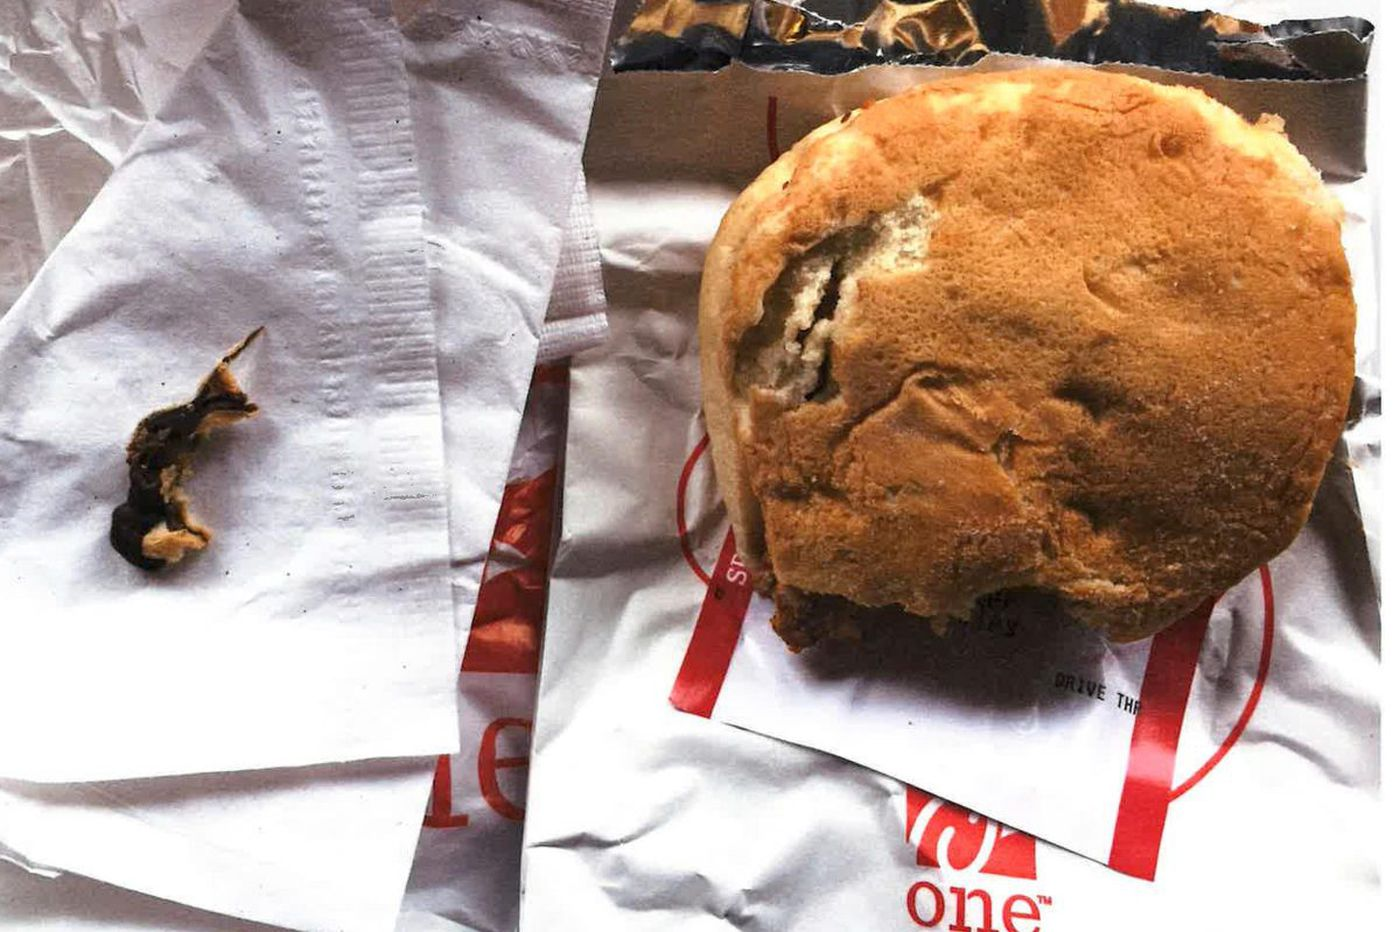 Bucks woman: Dead rodent baked into my Chick-fil-A sandwich